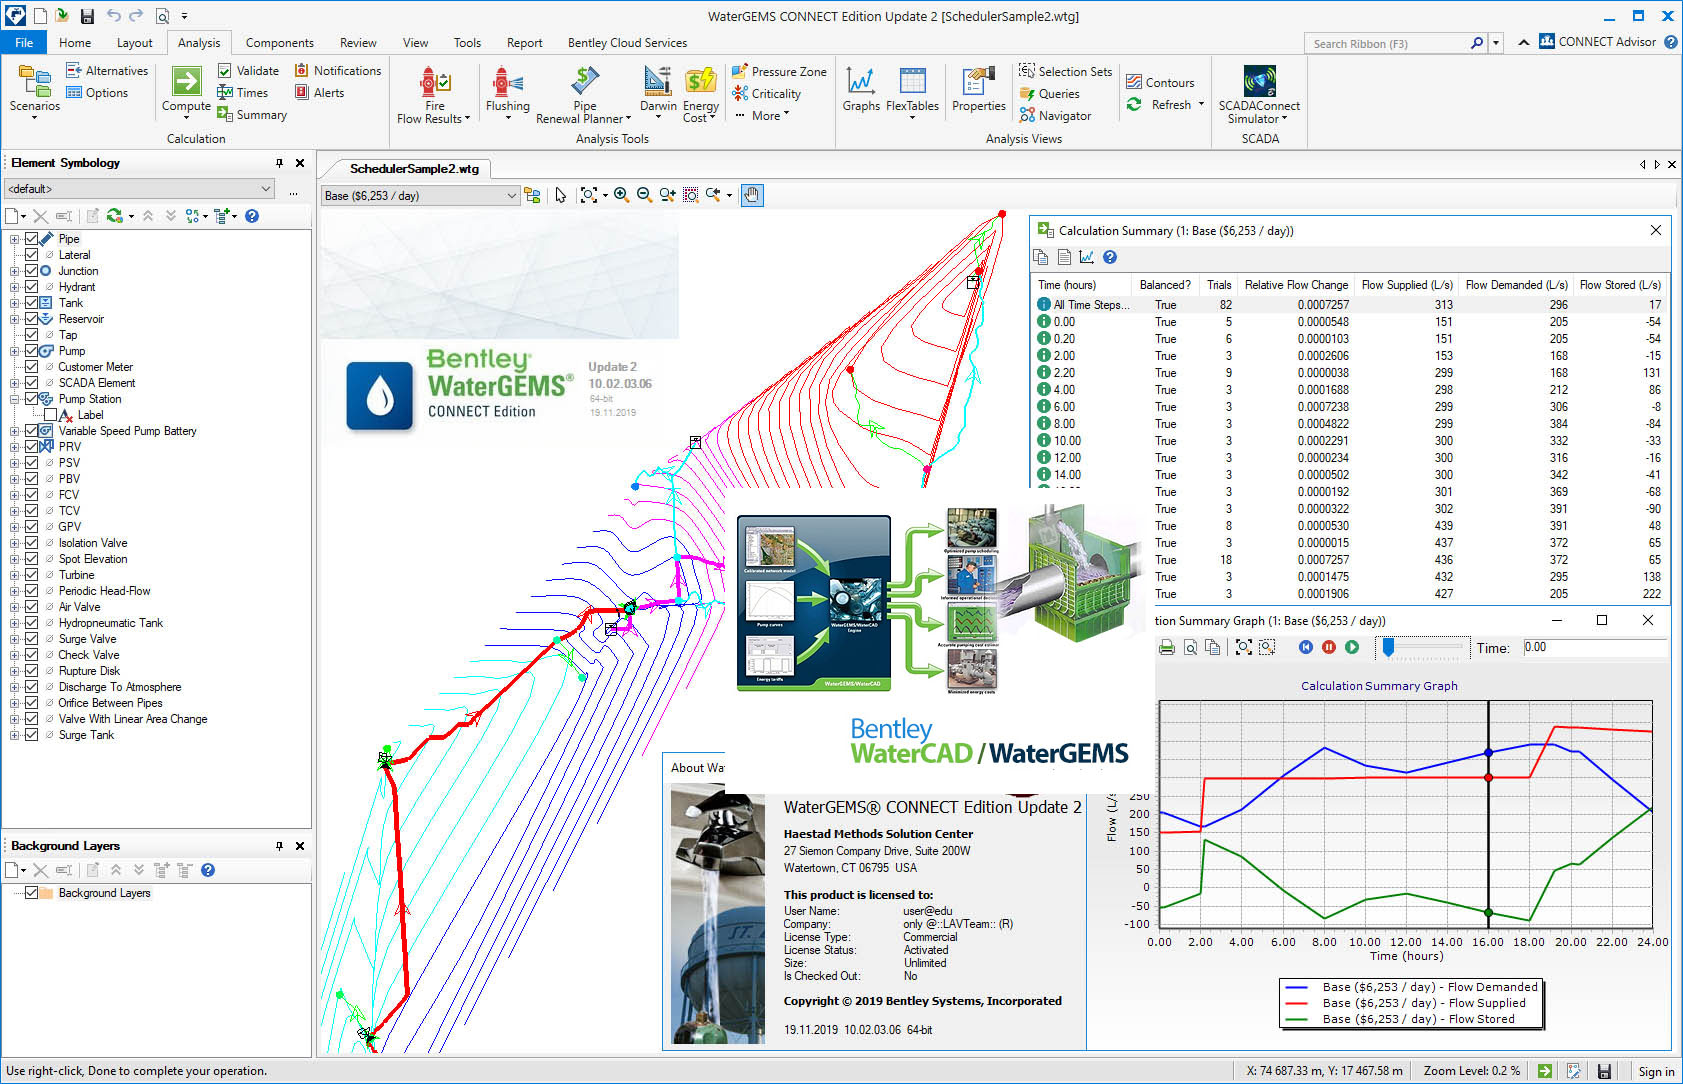 Working with Bentley SewerGEMS CONNECT Edition v10.02.01.04 full license